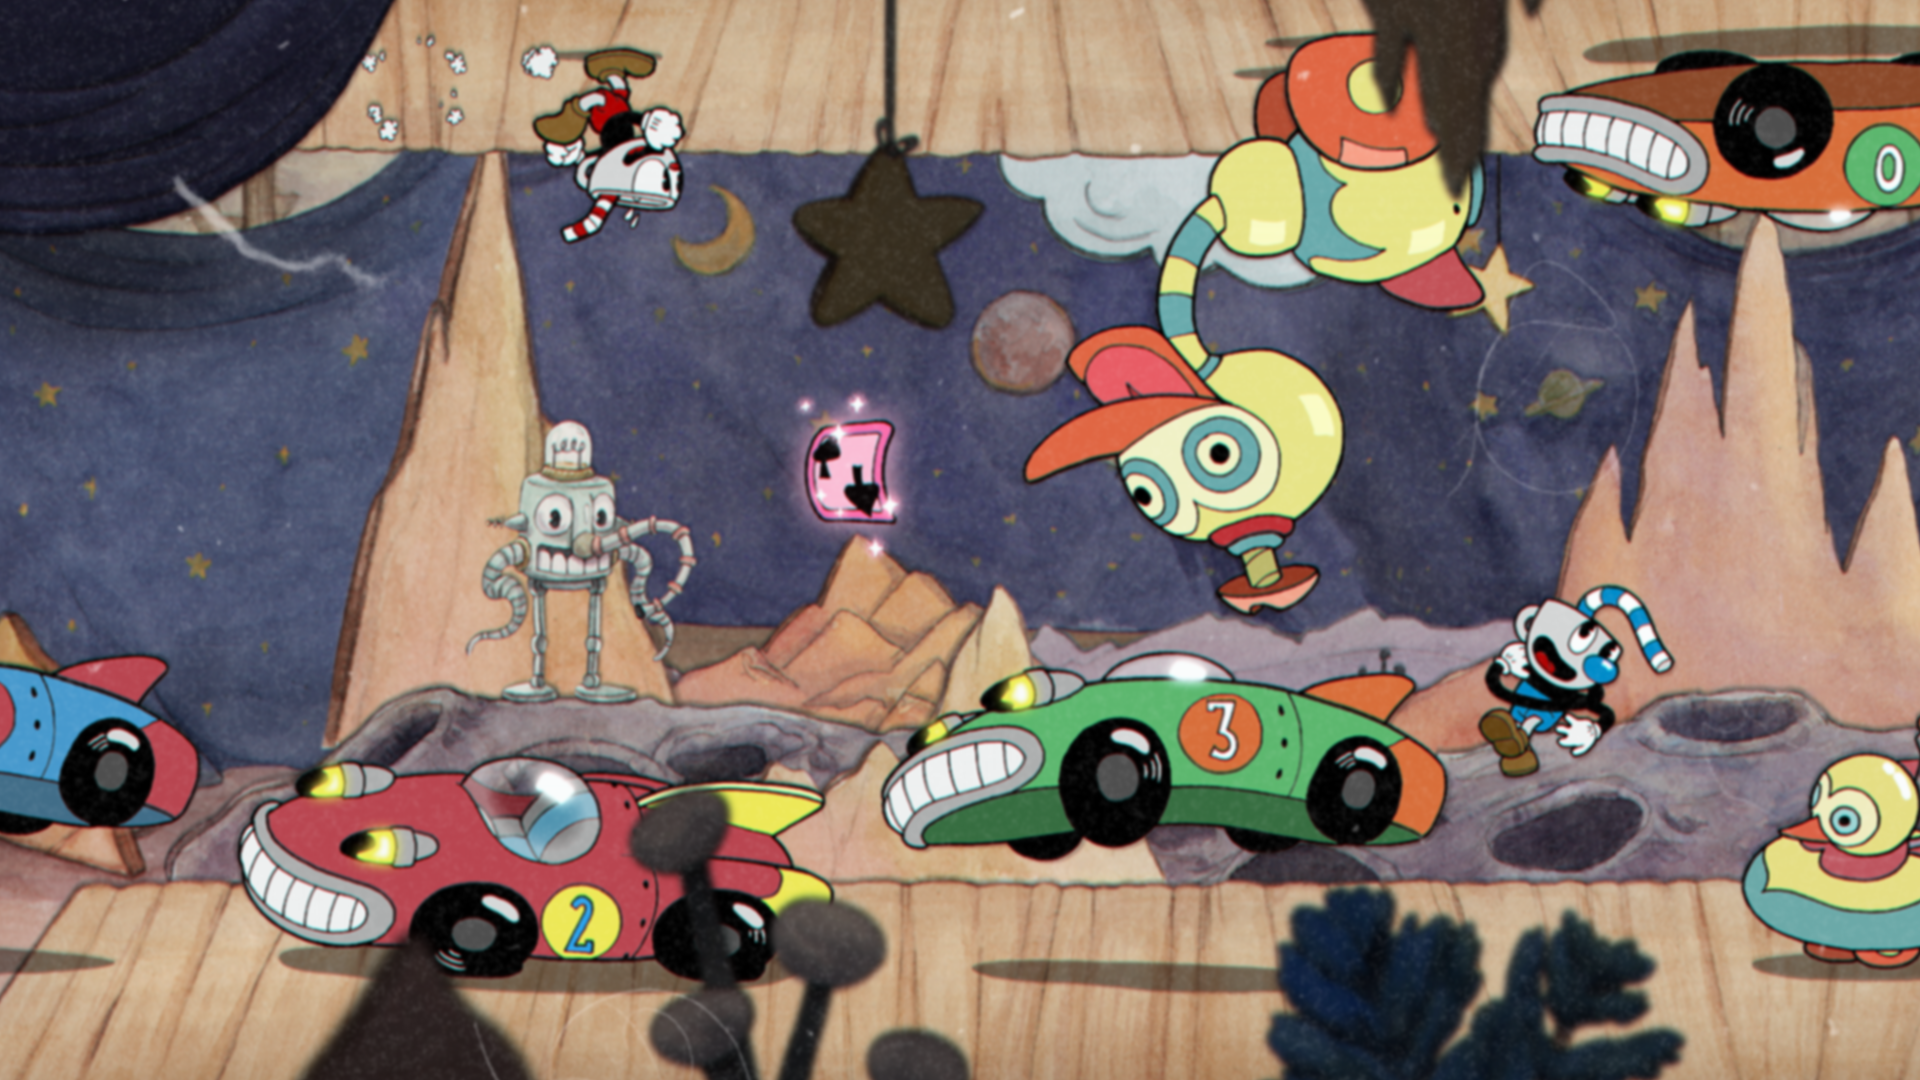 Screenshot from Cuphead. Red and green race cars driving across a wooden platform with Cuphead running upside down on the ceiling.